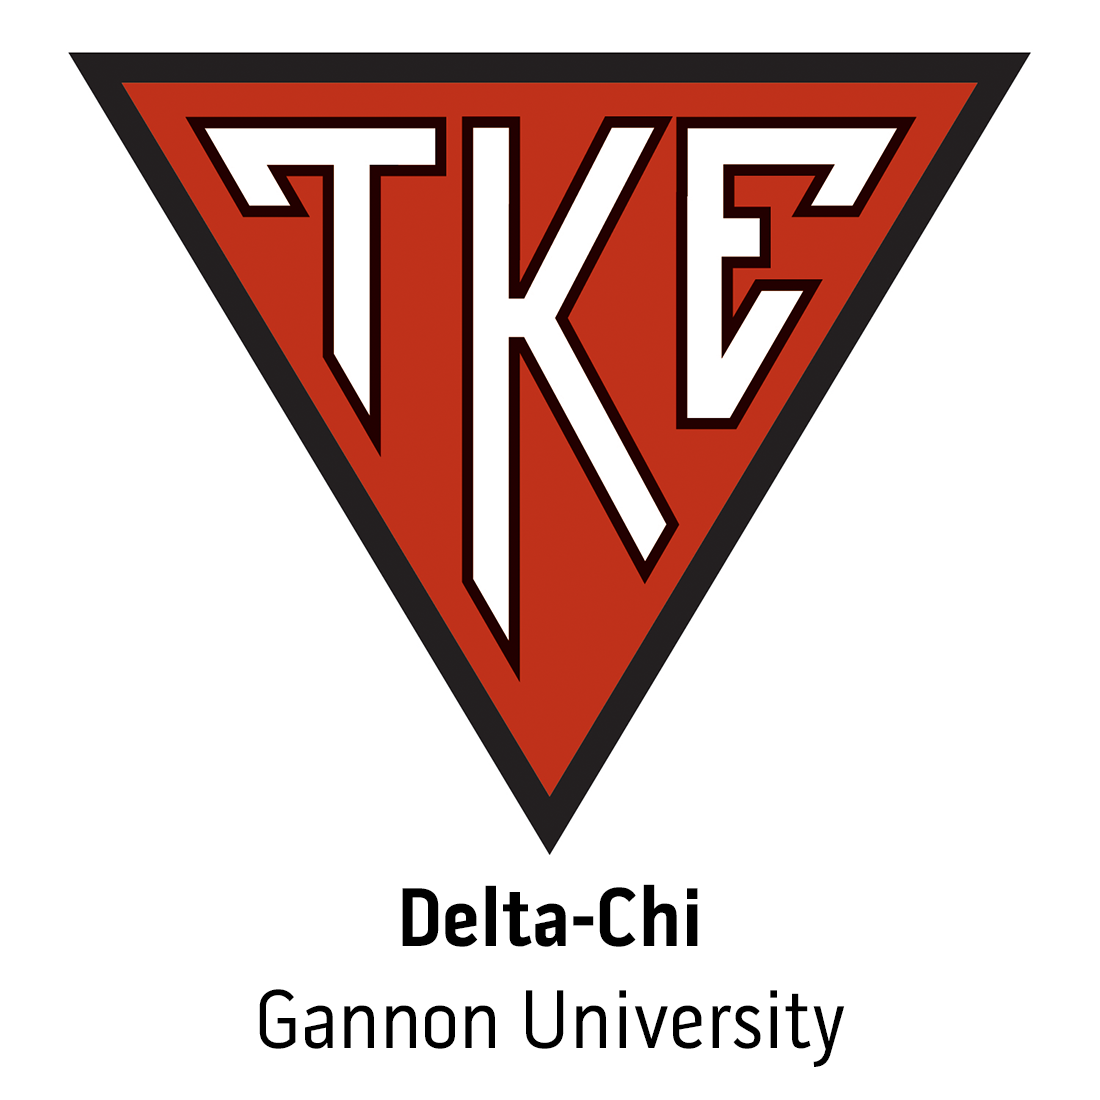 Delta-Chi Chapter at Gannon University